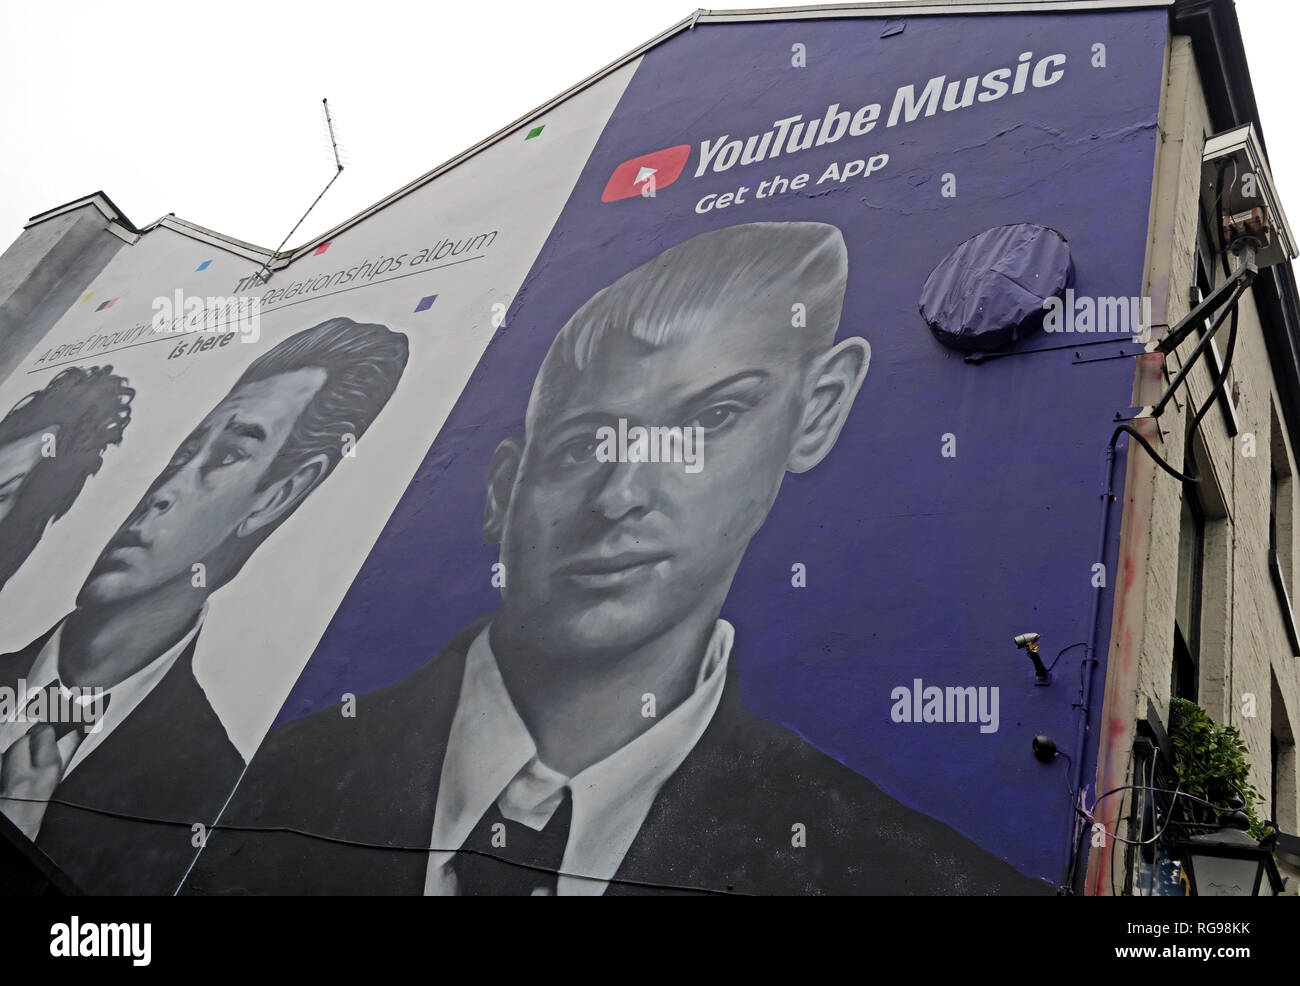 GoTonySmith,HotpixUK,@HotpixUK,England,UK,North West England,manchester,city centre,NQ4,Northern Quarter,1975,YouTube,Music,Get The App,Advert,on,building,Manchester City Centre,M4 2AF,M4,Music Get The App Advert,on gable end of building,Manchester,City Centre,GB,Ad,faces,face,band,billboard,Youtube music billboard,Youtube Music,2019,Manchester Band,Adam Hann,Ross MacDonald,George Daniel,streaming,service,A brief inquiry into online relationships